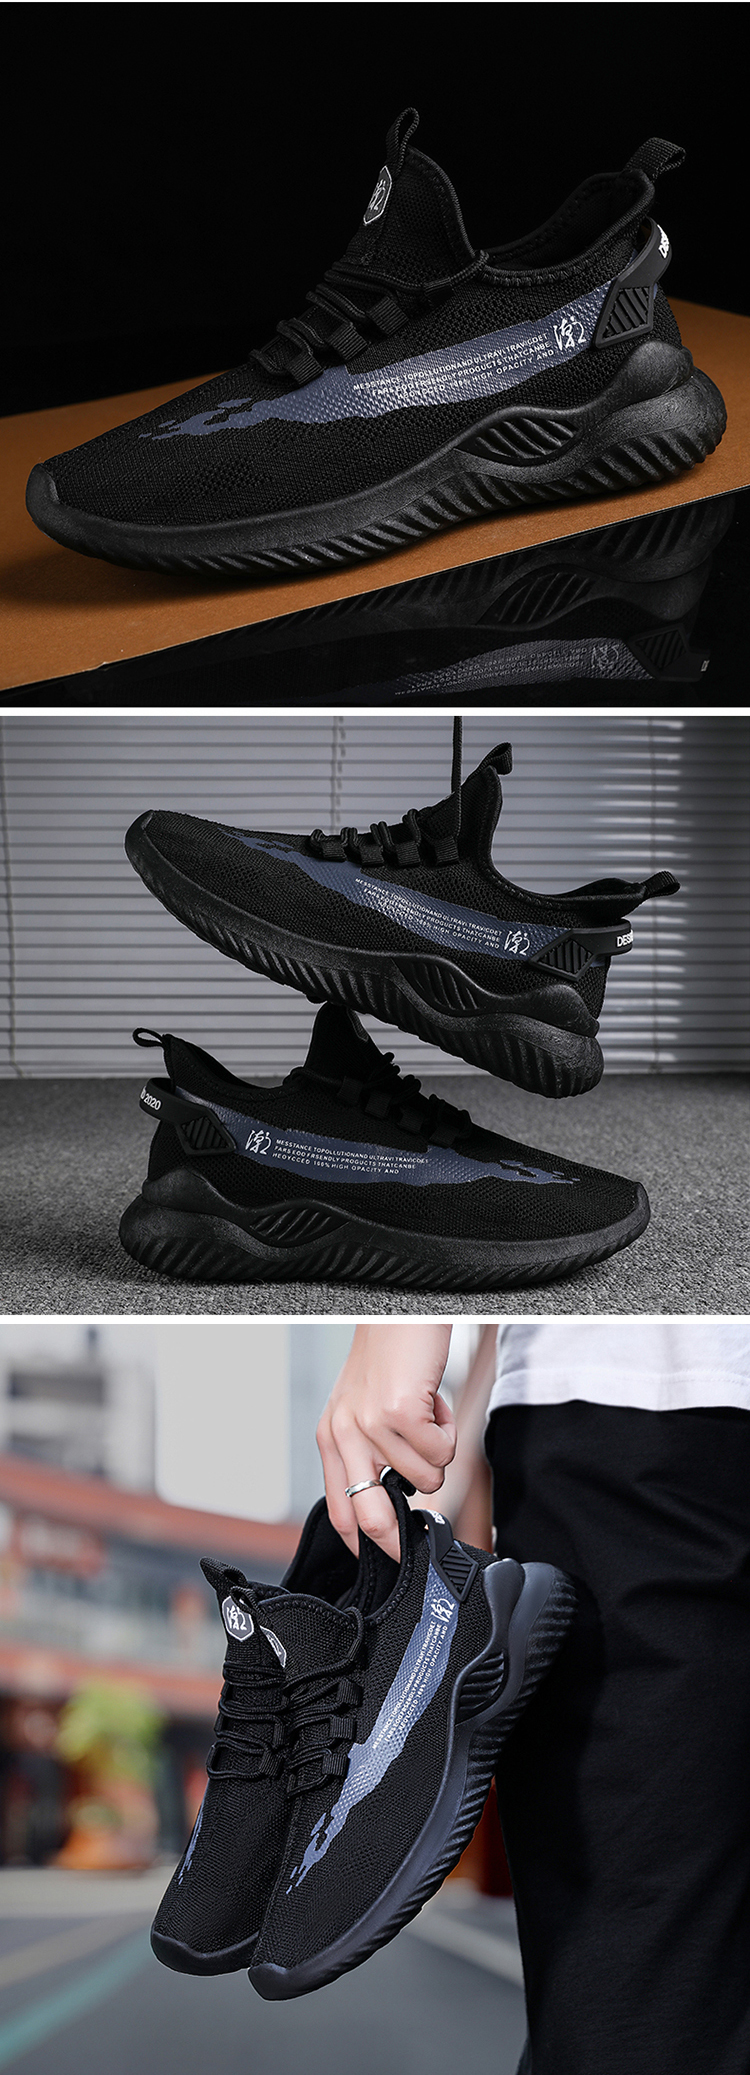 2020 Factory wholesale new casual men's sports shoes fashion sneaker